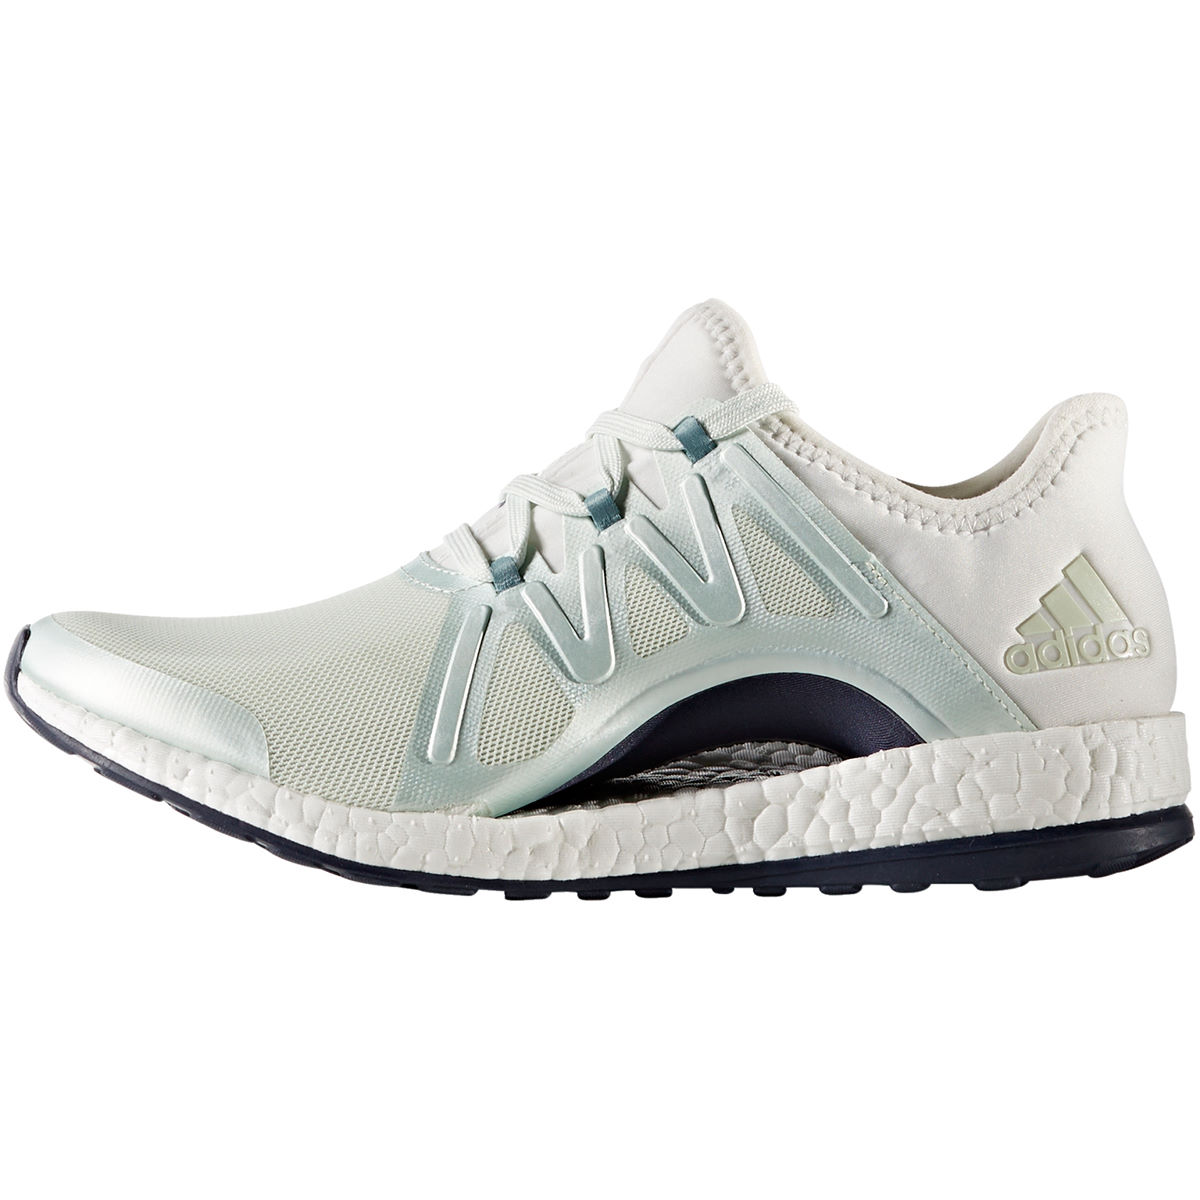 Chaussures Femme adidas Pure Boost Xpose - 7,5 UK Vert